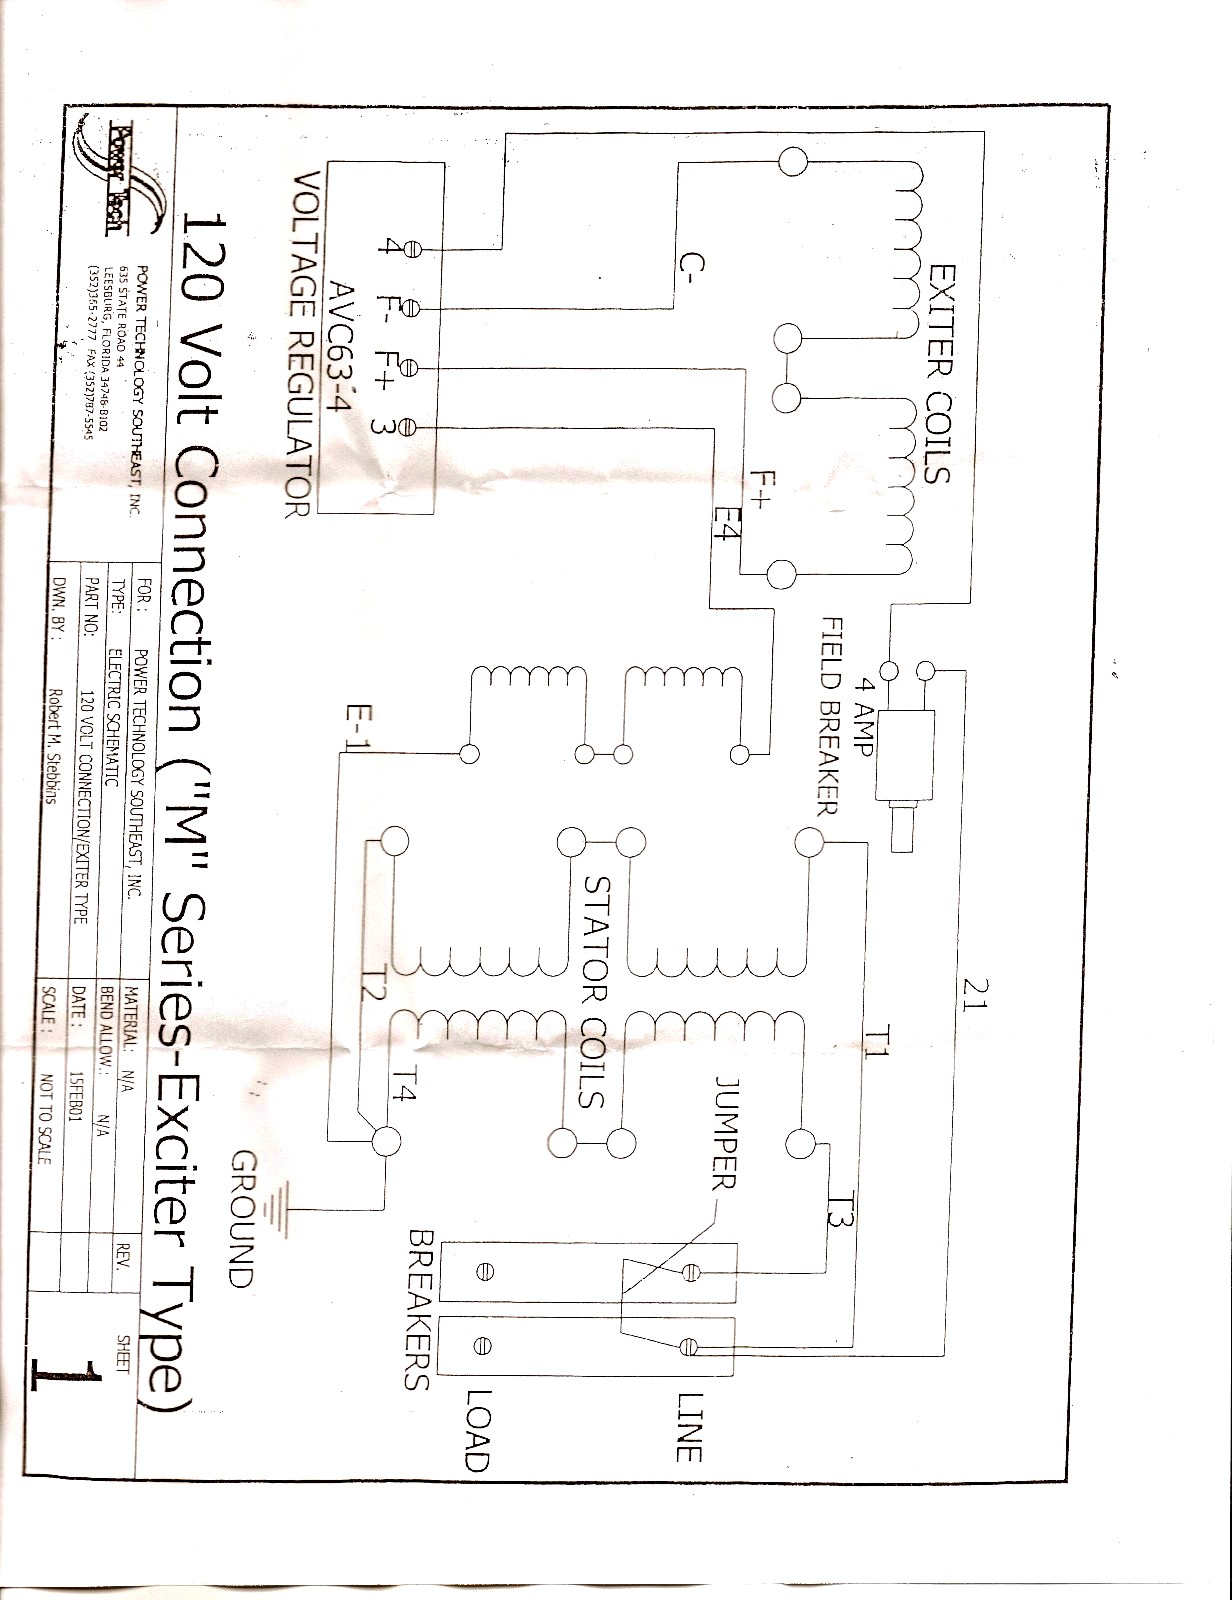 120V VOLTAGE REGULATOR DIAGRAM powertech service for your generator wanderlodge owners group woodward 505 wiring diagram at gsmx.co